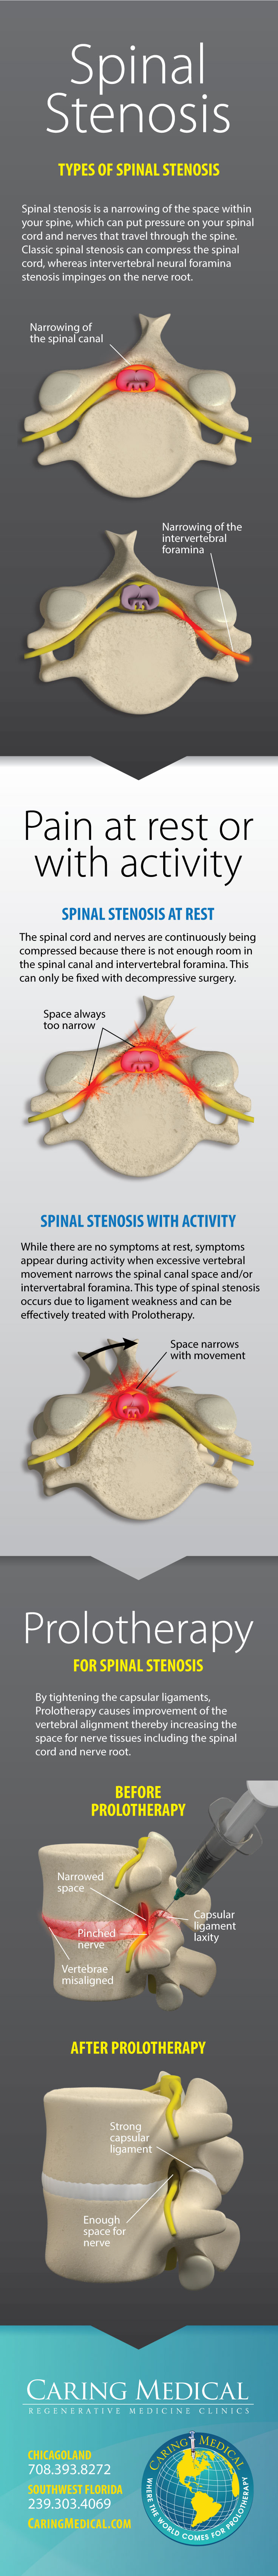 Spinal Stenosis Infographic